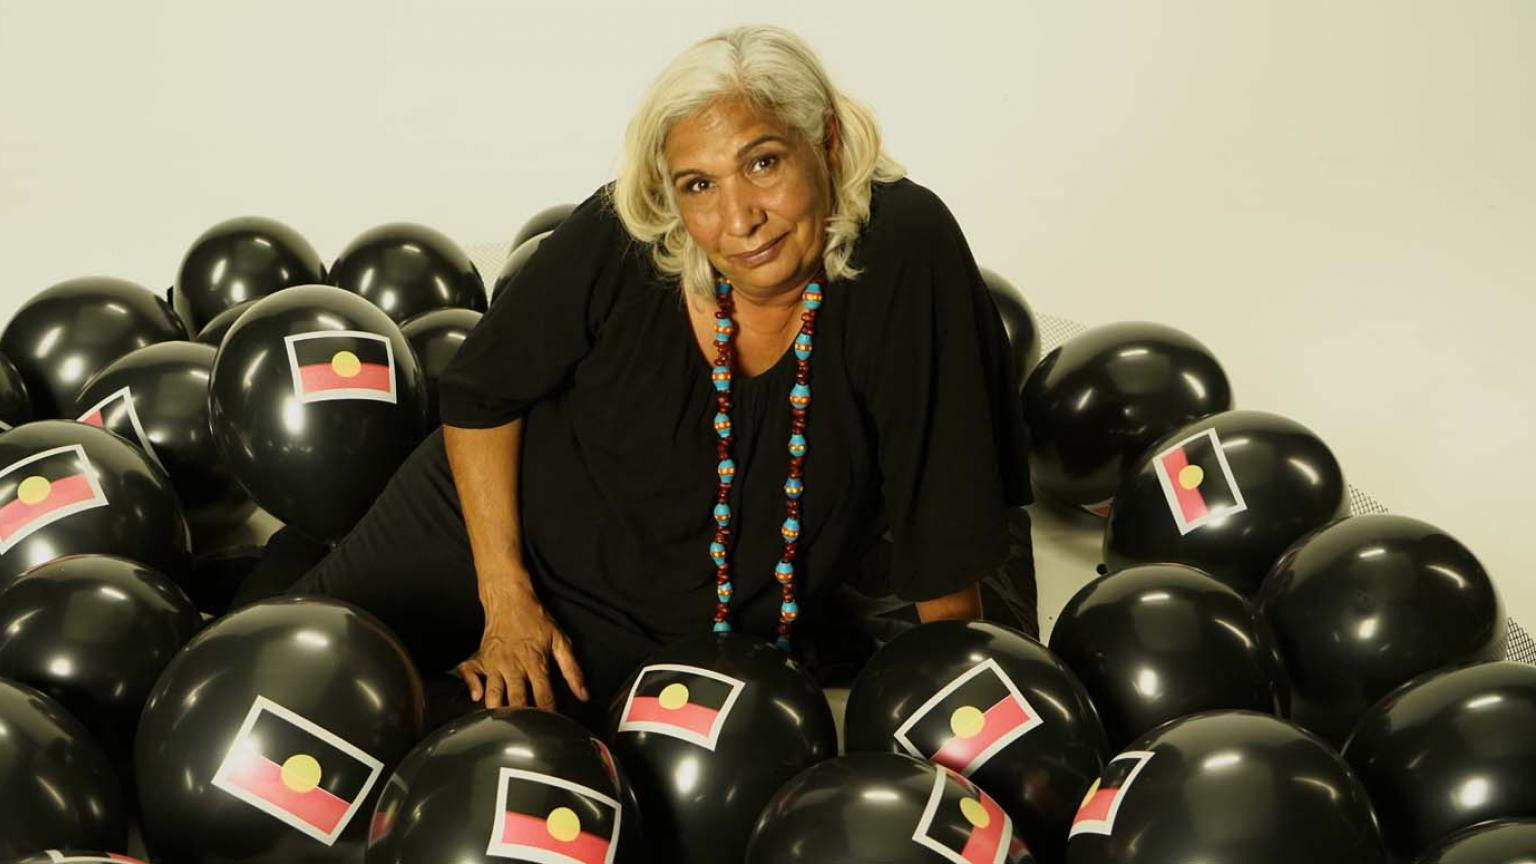 Trisha Morton-Thomas wearing a black dress and surrounded by black balloons with the Aboriginal flag on them